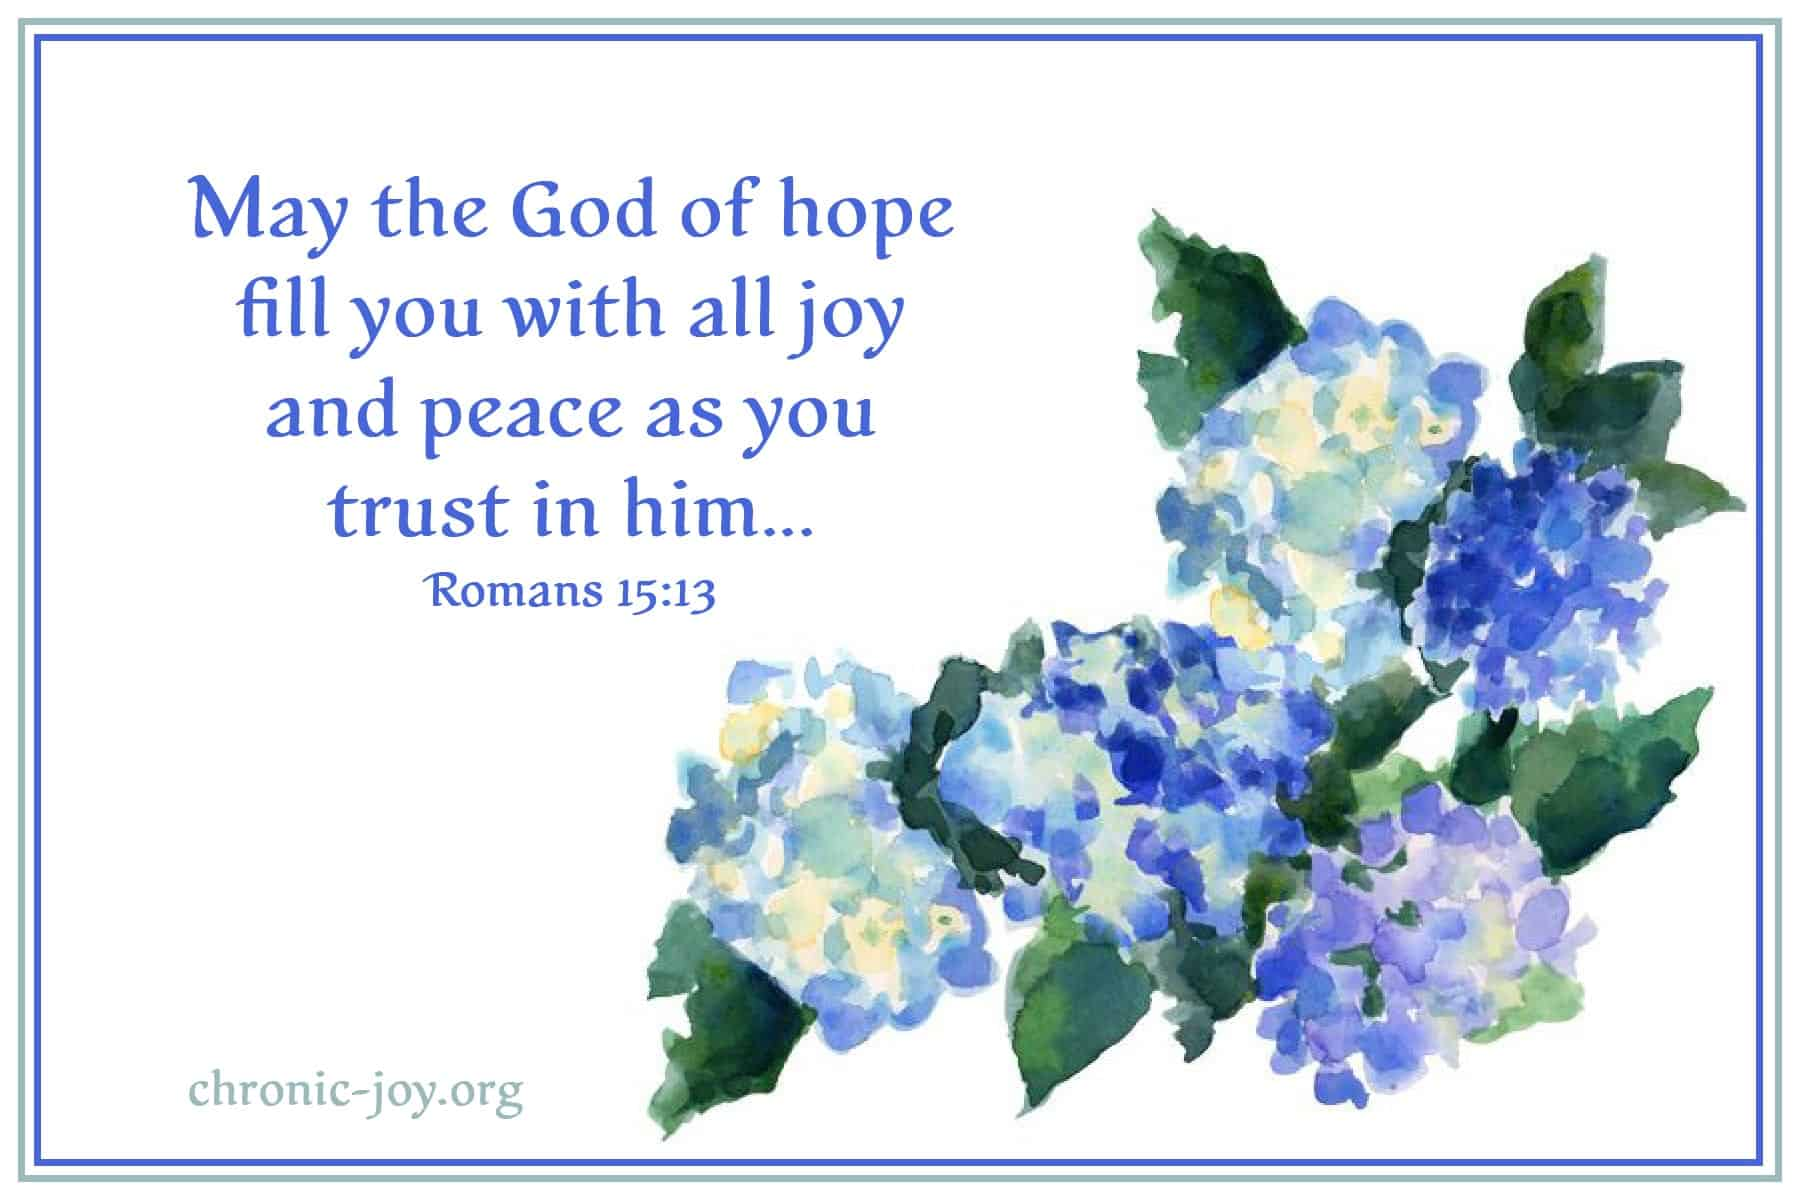 May the God of hope fill you with all joy...